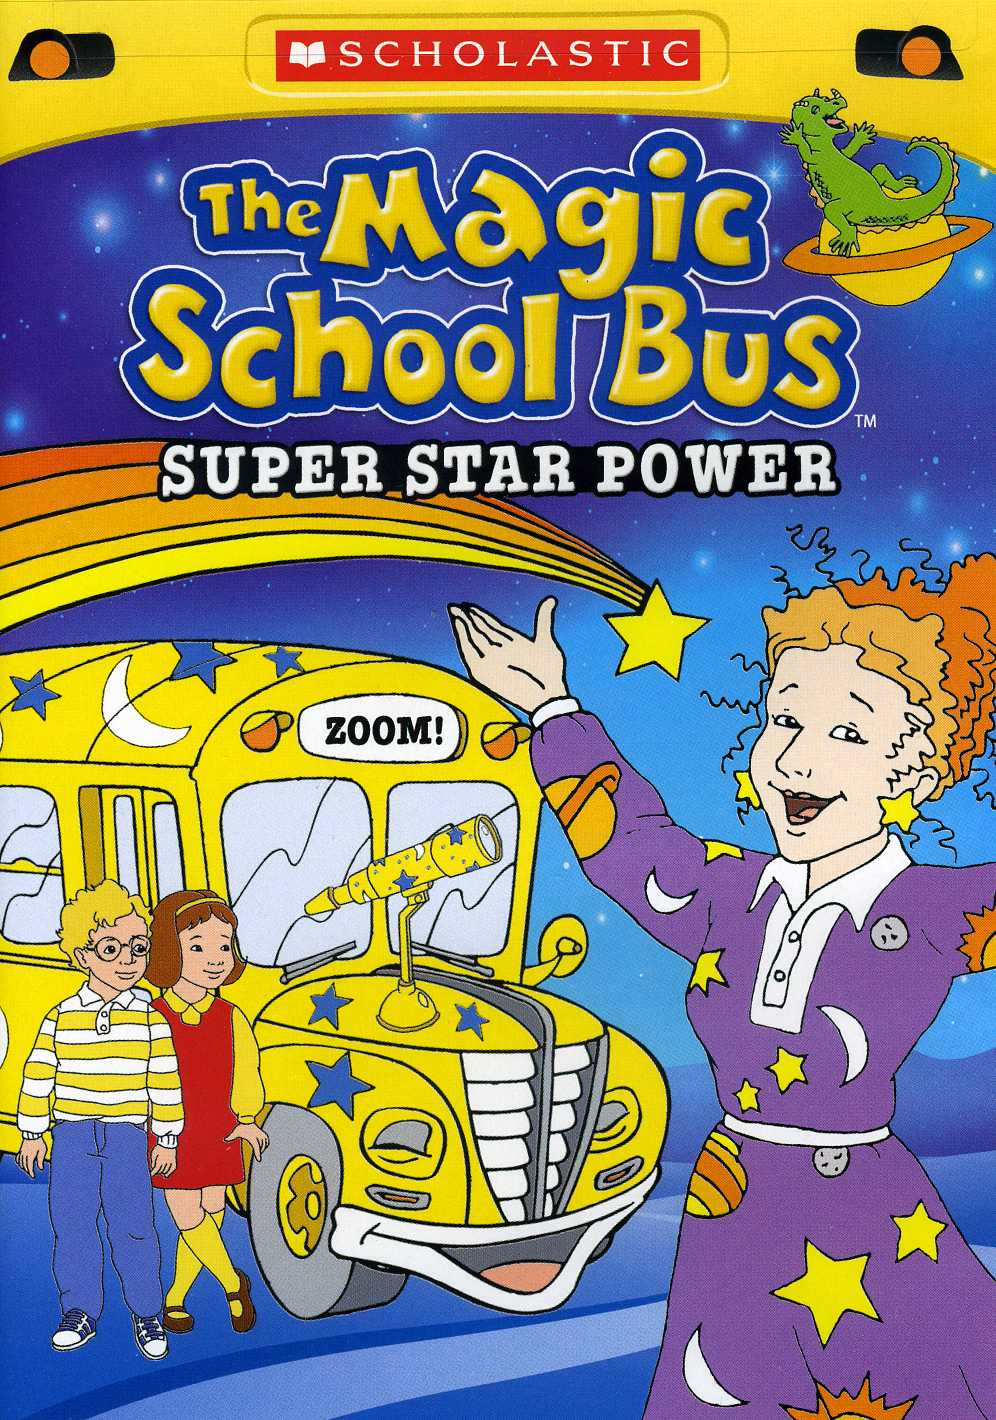 The Magic School Bus Class Space Magic School Bus Gets